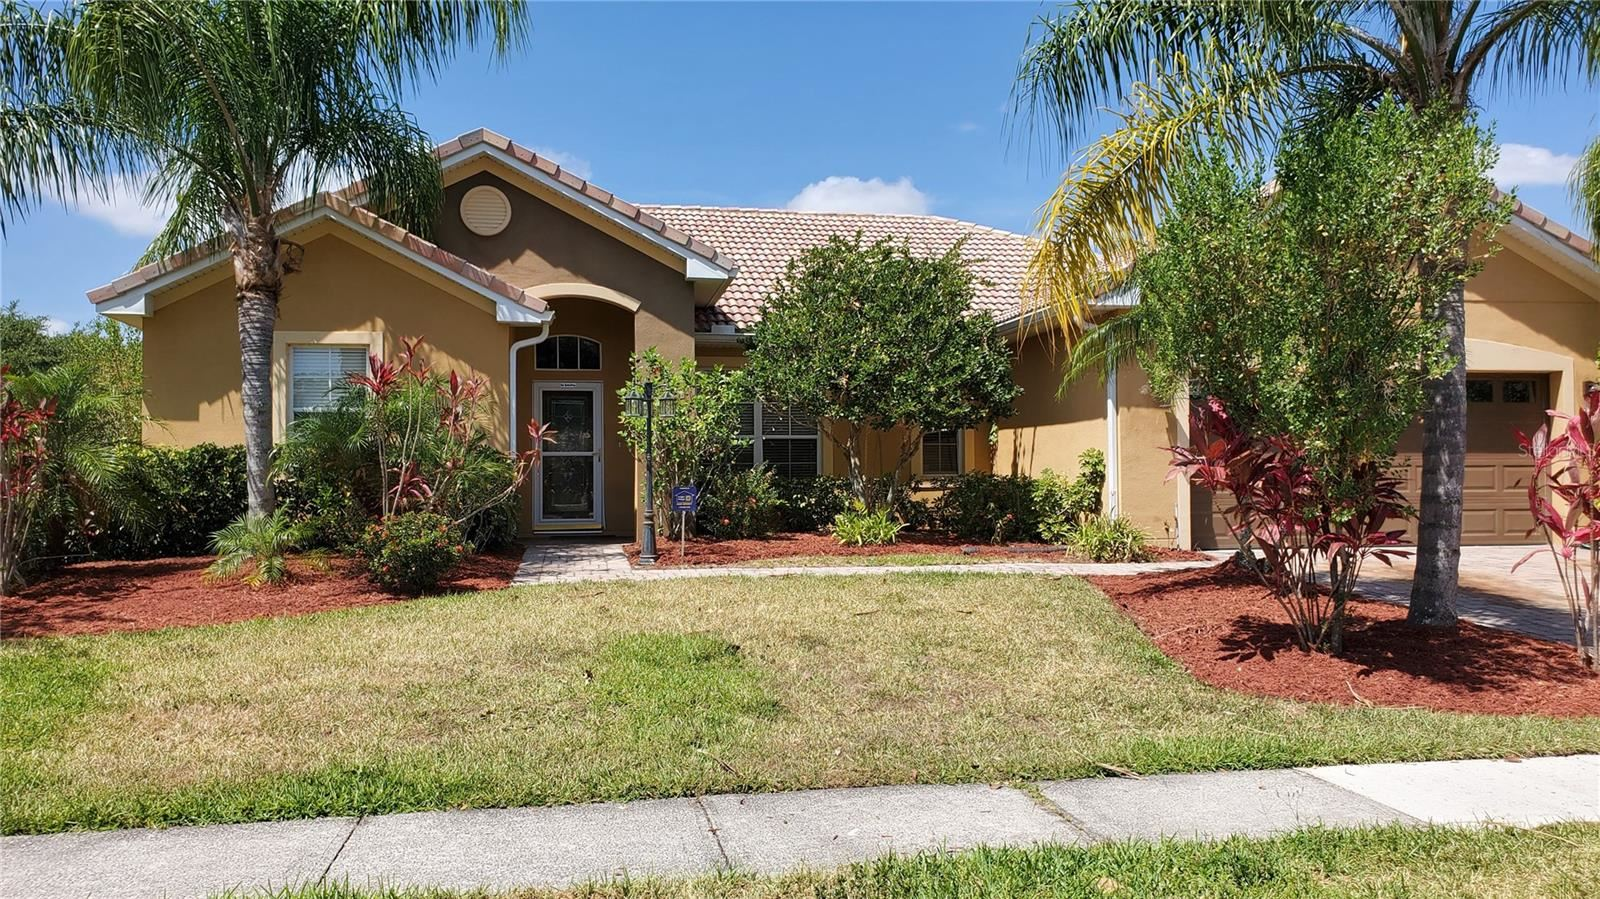 3560 FOREST PARK DRIVE, Kissimmee, FL 34746 - #: S5051149